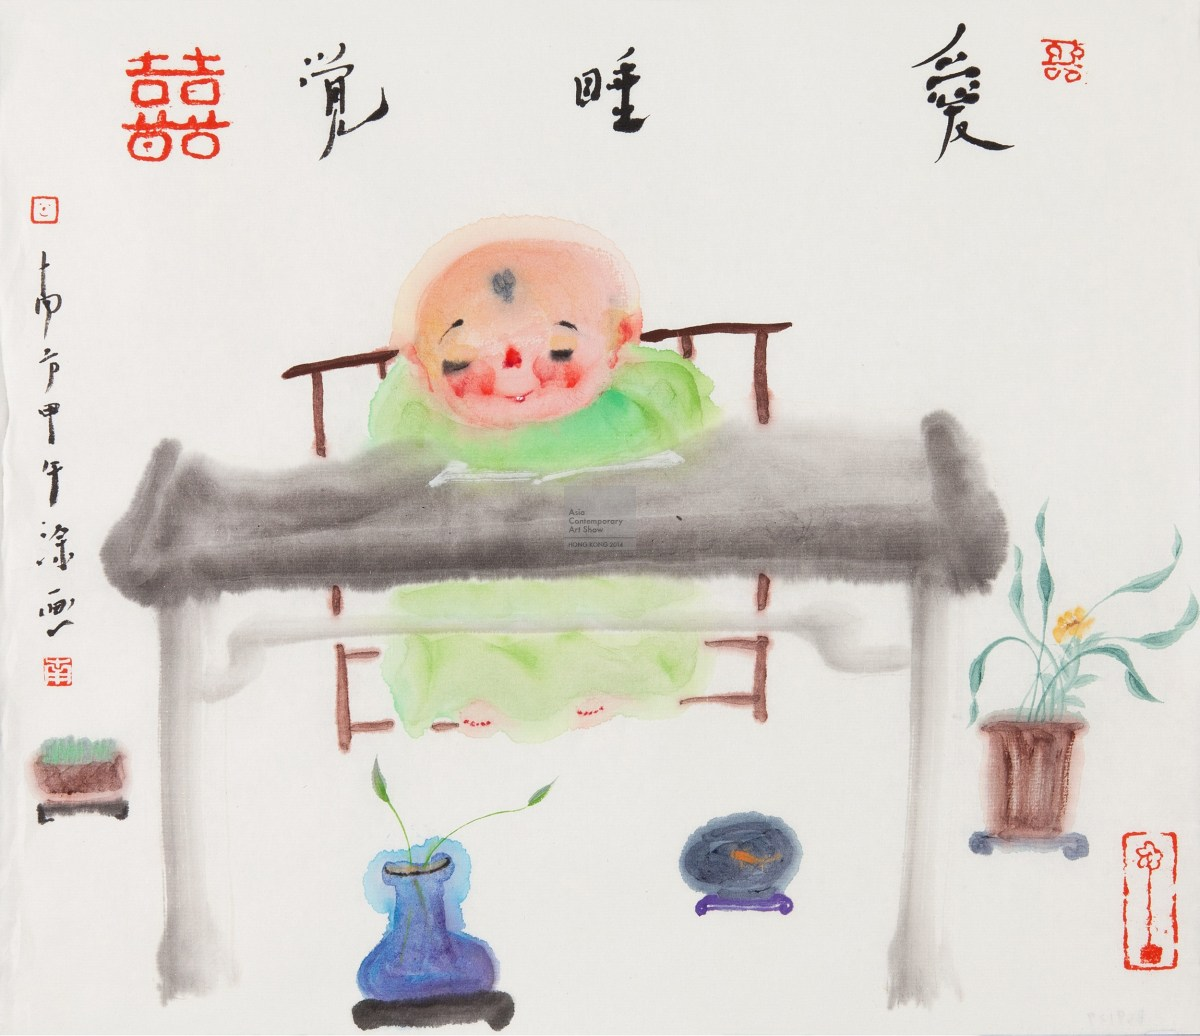 """Nan Fang, """"Love SLeep"""", 2013. All rights reserved"""